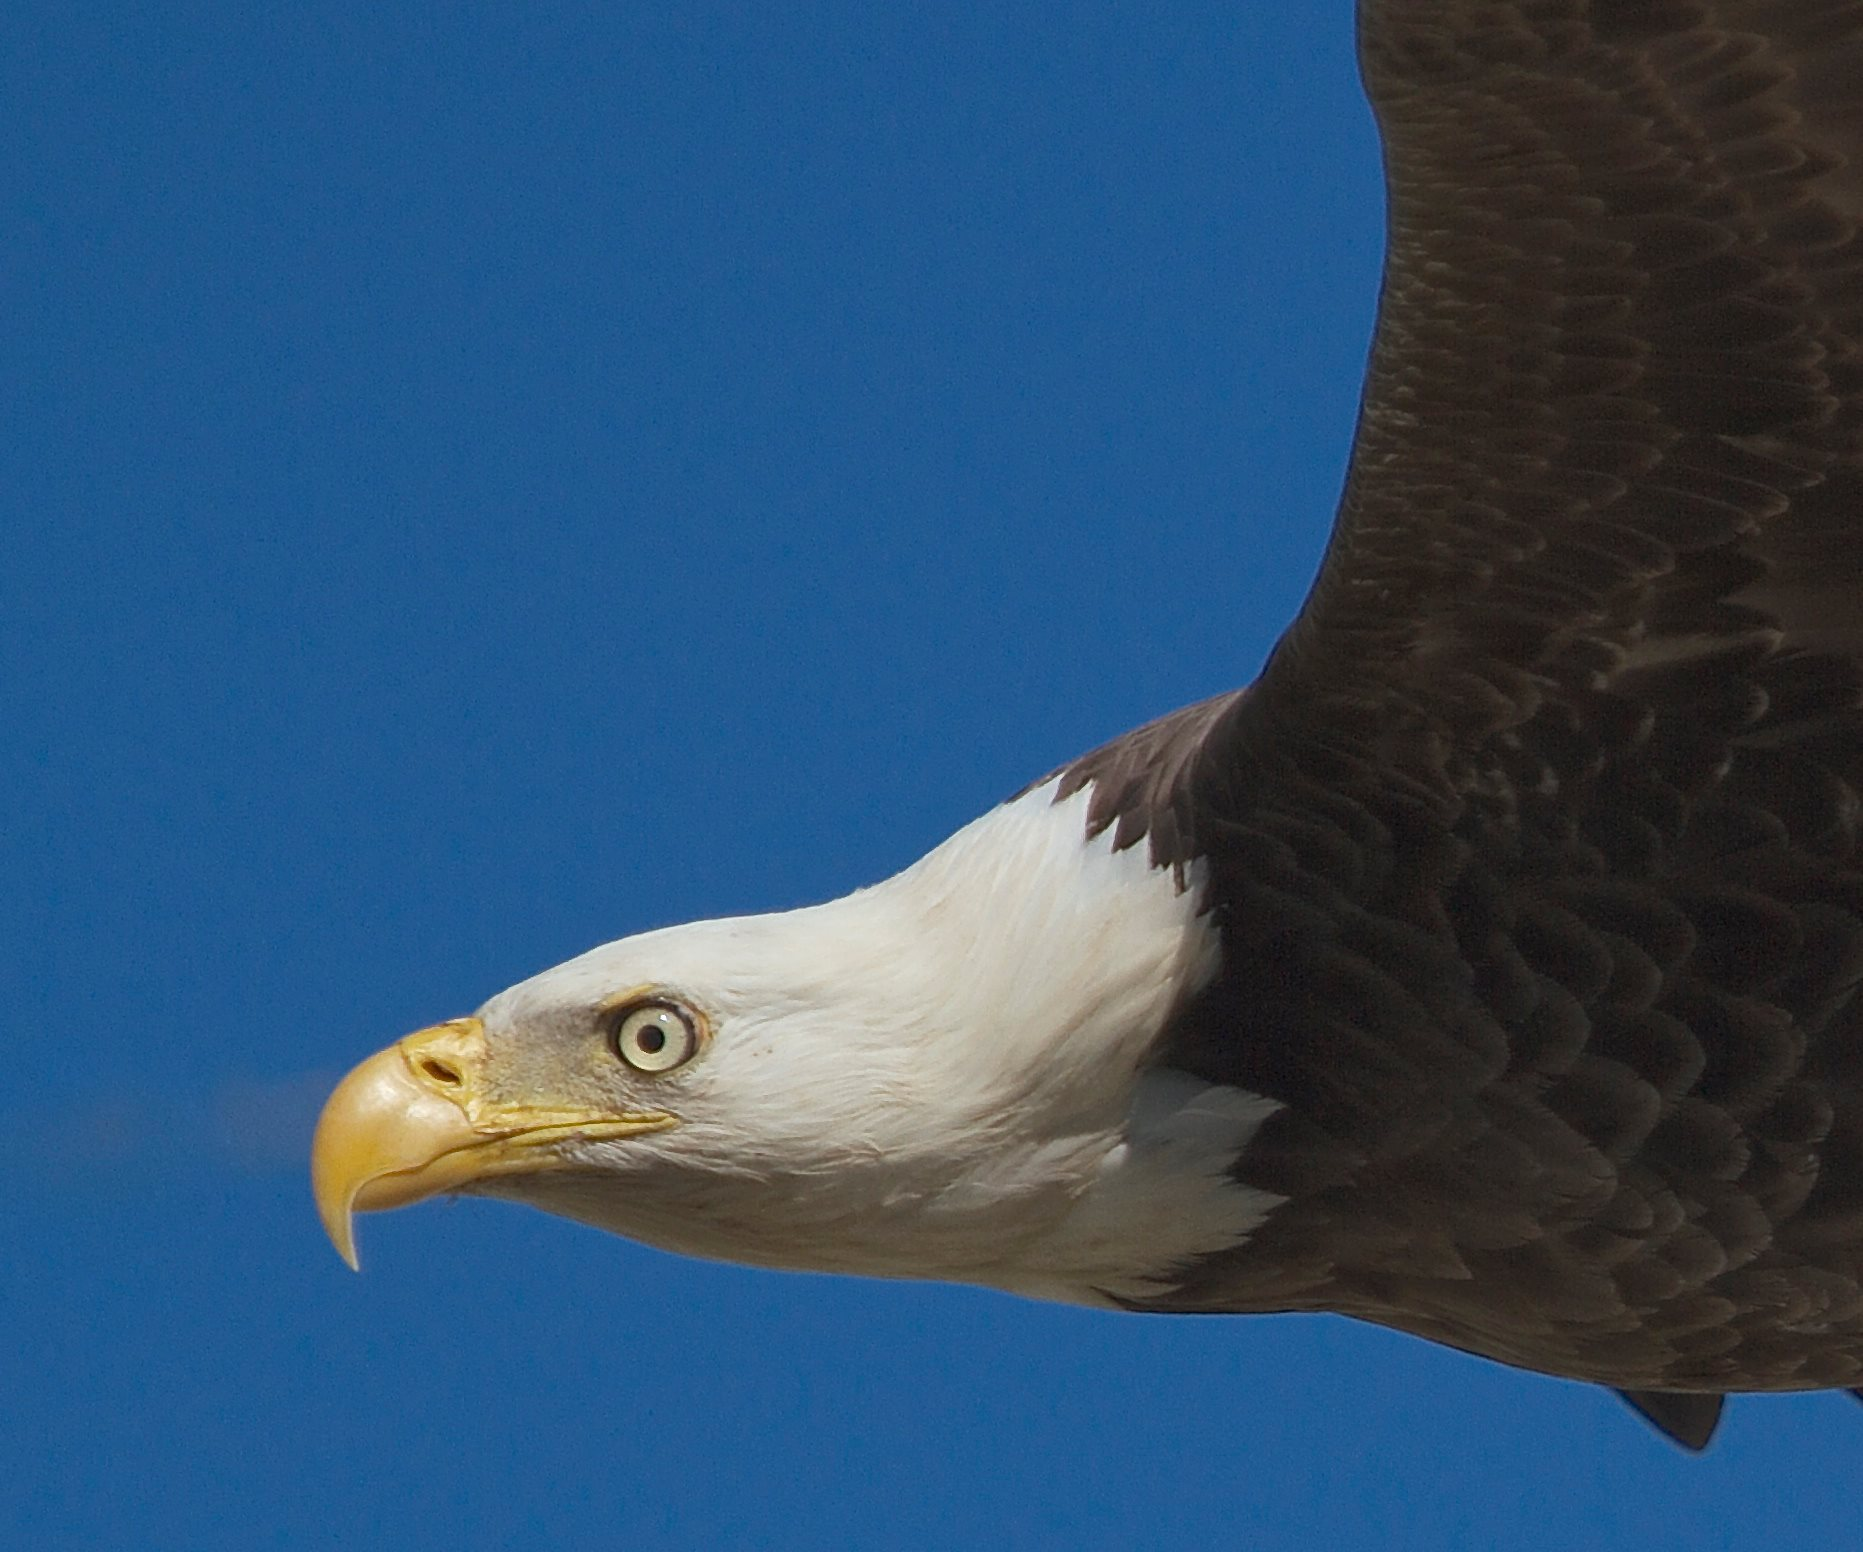 American Great Bald Eagle...King of the sky